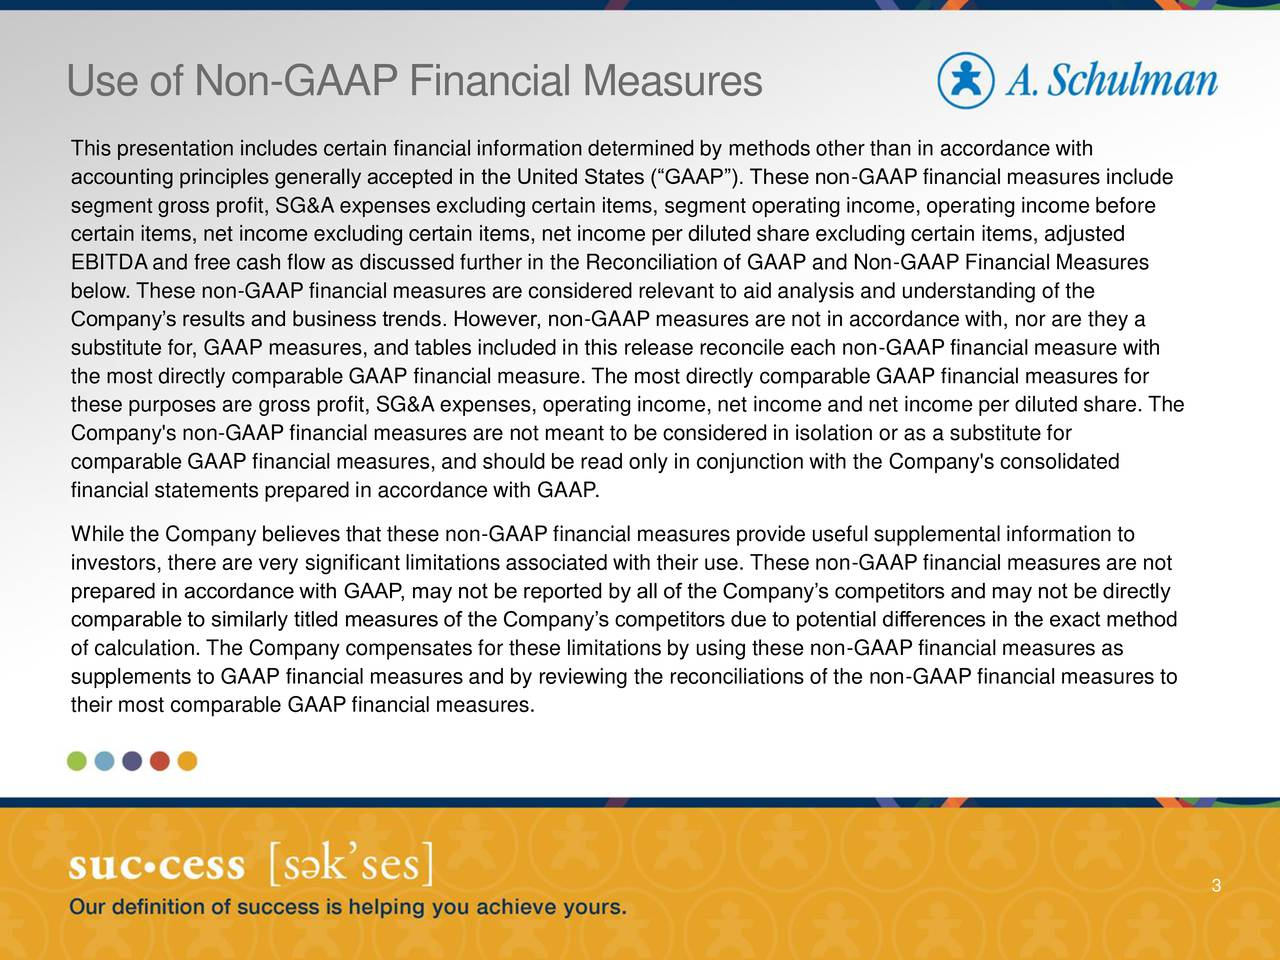 This presentation includes certain financial information determined by methods other than in accordance with accounting principles generally accepted in the United States (GAAP). These non-GAAP financial measures include segment gross profit, SG&A expenses excluding certain items, segment operating income, operating income before certain items, net income excluding certain items, net income per diluted share excluding certain items, adjusted EBITDA and free cash flow as discussed further in the Reconciliation of GAAP and Non-GAAP Financial Measures below. These non-GAAP financial measures are considered relevant to aid analysis and understanding of the Companys results and business trends. However, non-GAAP measures are not in accordance with, nor are they a substitute for, GAAP measures, and tables included in this release reconcile each non-GAAP financial measure with the most directly comparable GAAP financial measure. The most directly comparable GAAP financial measures for these purposes are gross profit, SG&A expenses, operating income, net income and net income per diluted share. The Company's non-GAAP financial measures are not meant to be considered in isolation or as a substitute for comparable GAAP financial measures, and should be read only in conjunction with the Company's consolidated financial statements prepared in accordance with GAAP. While the Company believes that these non-GAAP financial measures provide useful supplemental information to investors, there are very significant limitations associated with their use. These non-GAAP financial measures are not prepared in accordance with GAAP, may not be reported by all of the Companys competitors and may not be directly comparable to similarly titled measures of the Companys competitors due to potential differences in the exact method of calculation. The Company compensates for these limitations by using these non-GAAP financial measures as supplements to GAAP financial measures and by reviewing the